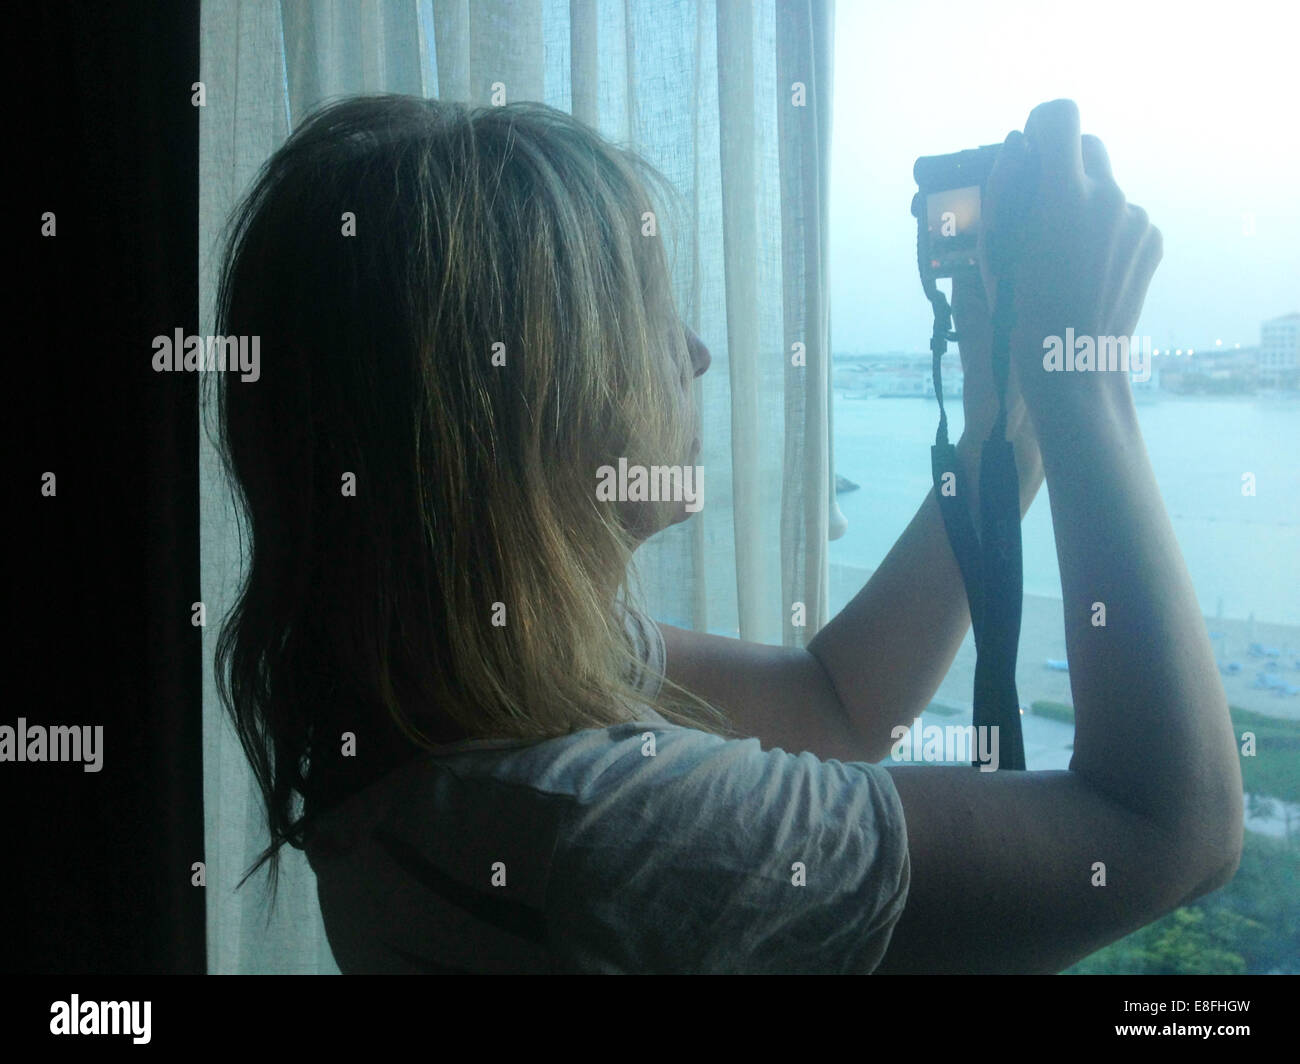 Woman taking photograph out of window - Stock Image